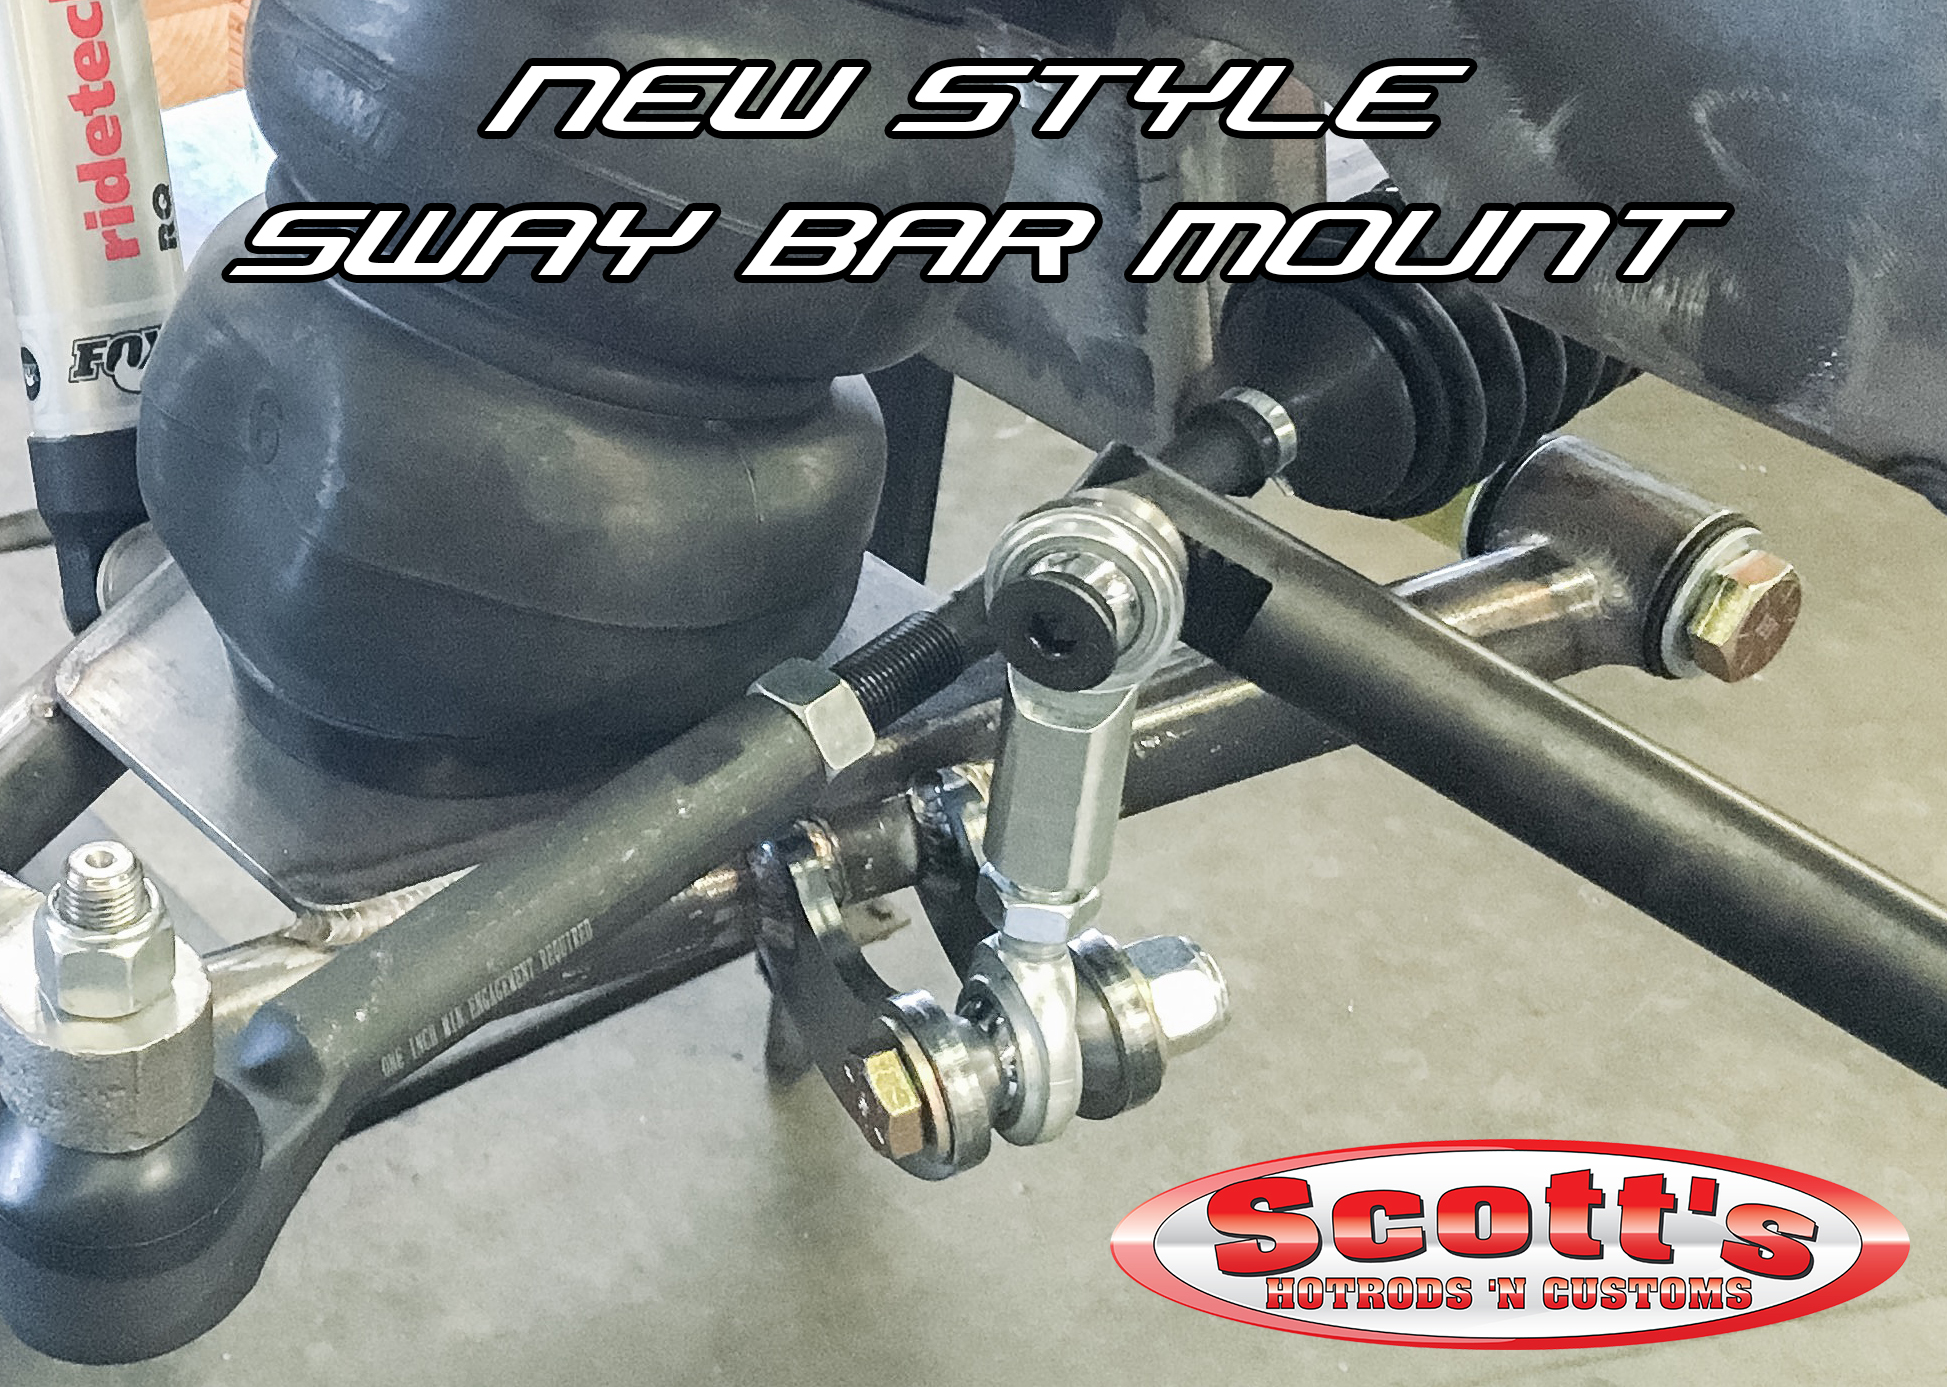 SWAY-BAR-MOUNT